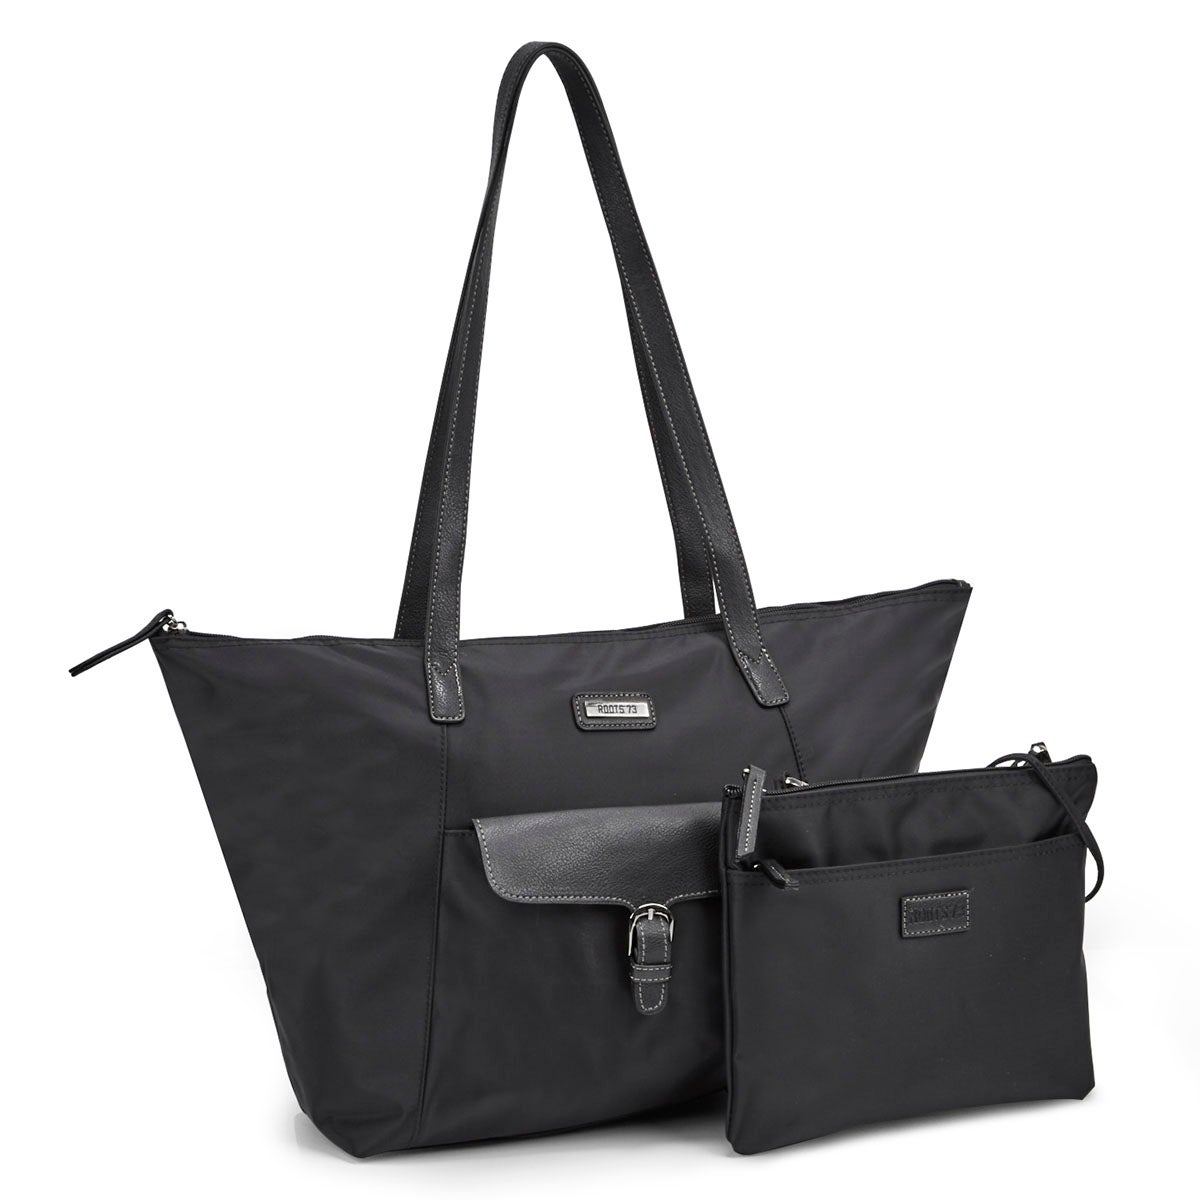 Lds Roots73 black 2 in 1 tote bag